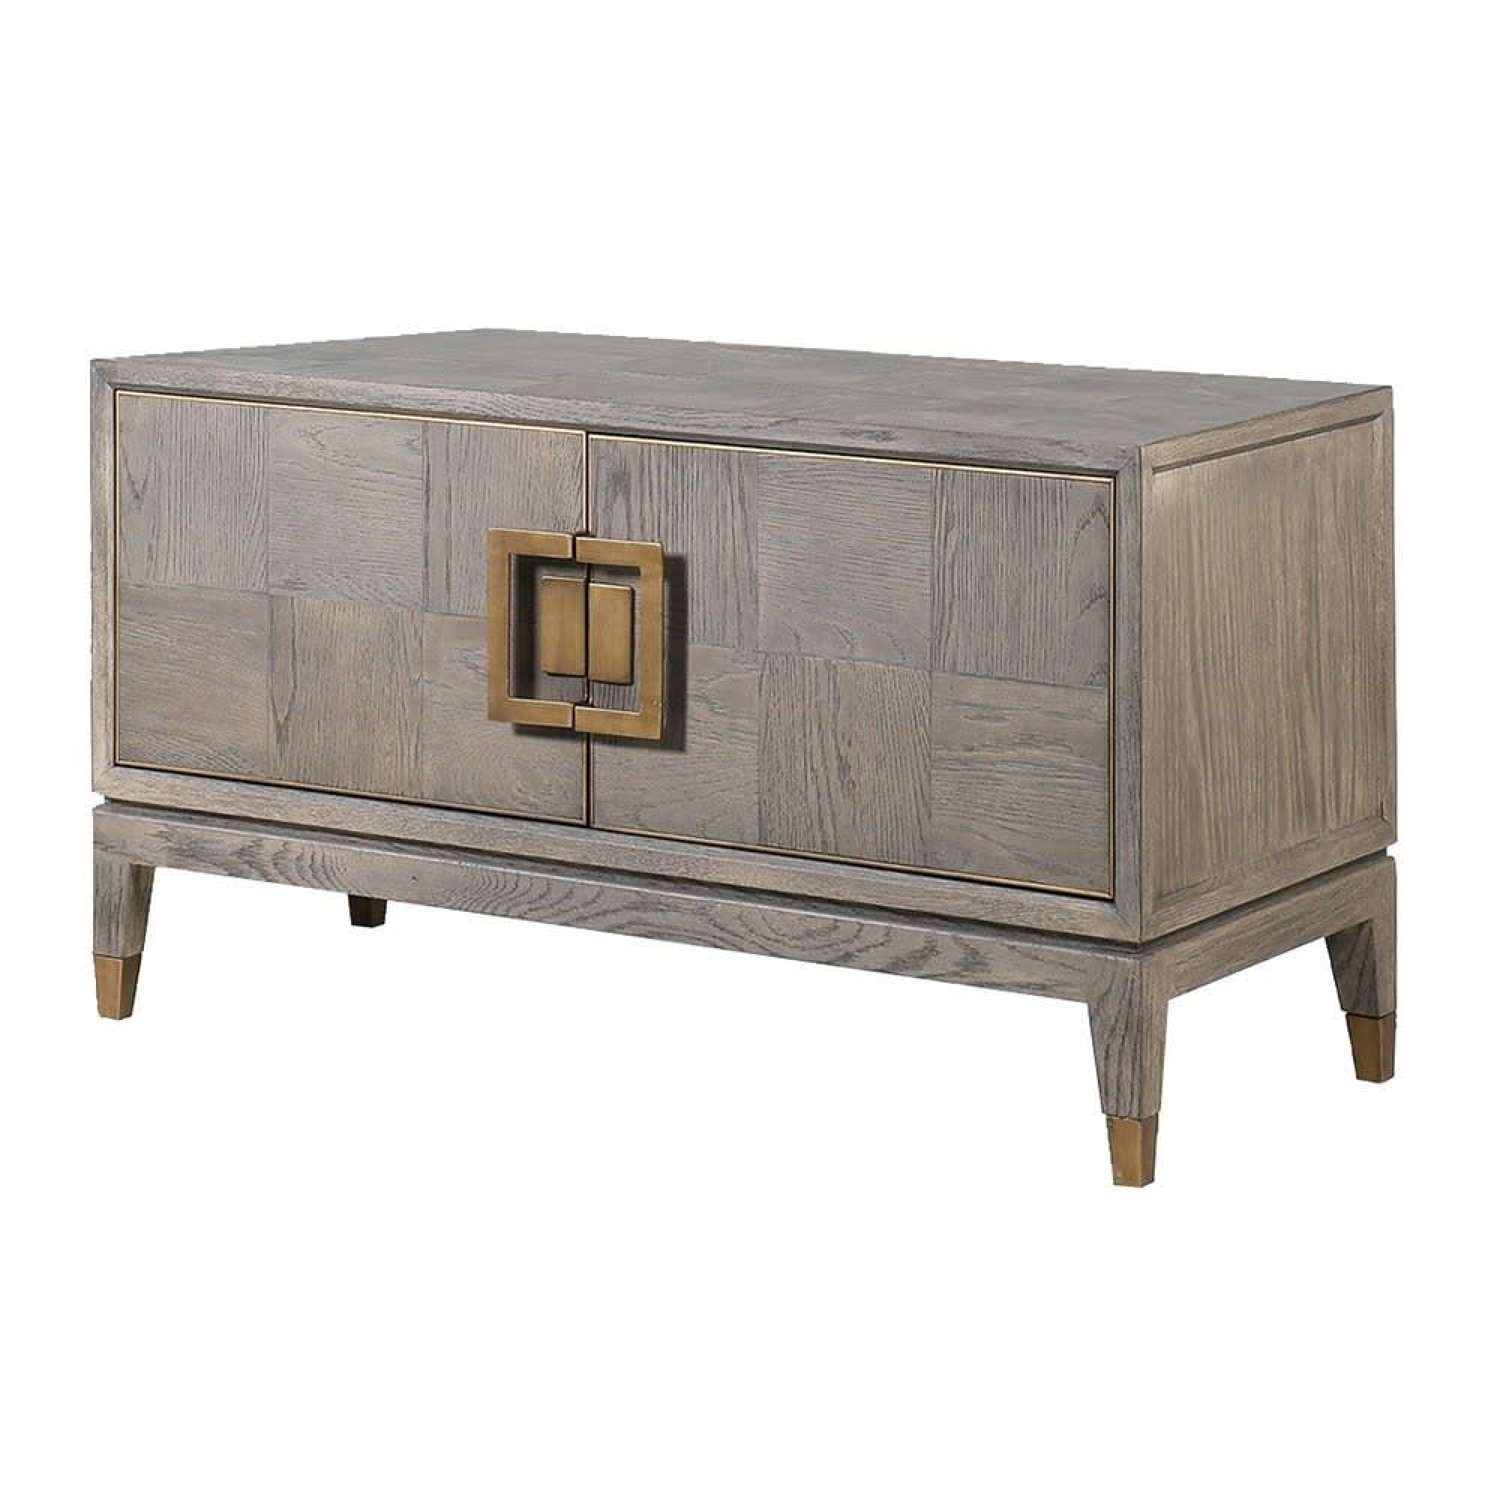 Textured Oak Small Media Unit with Brass Detail